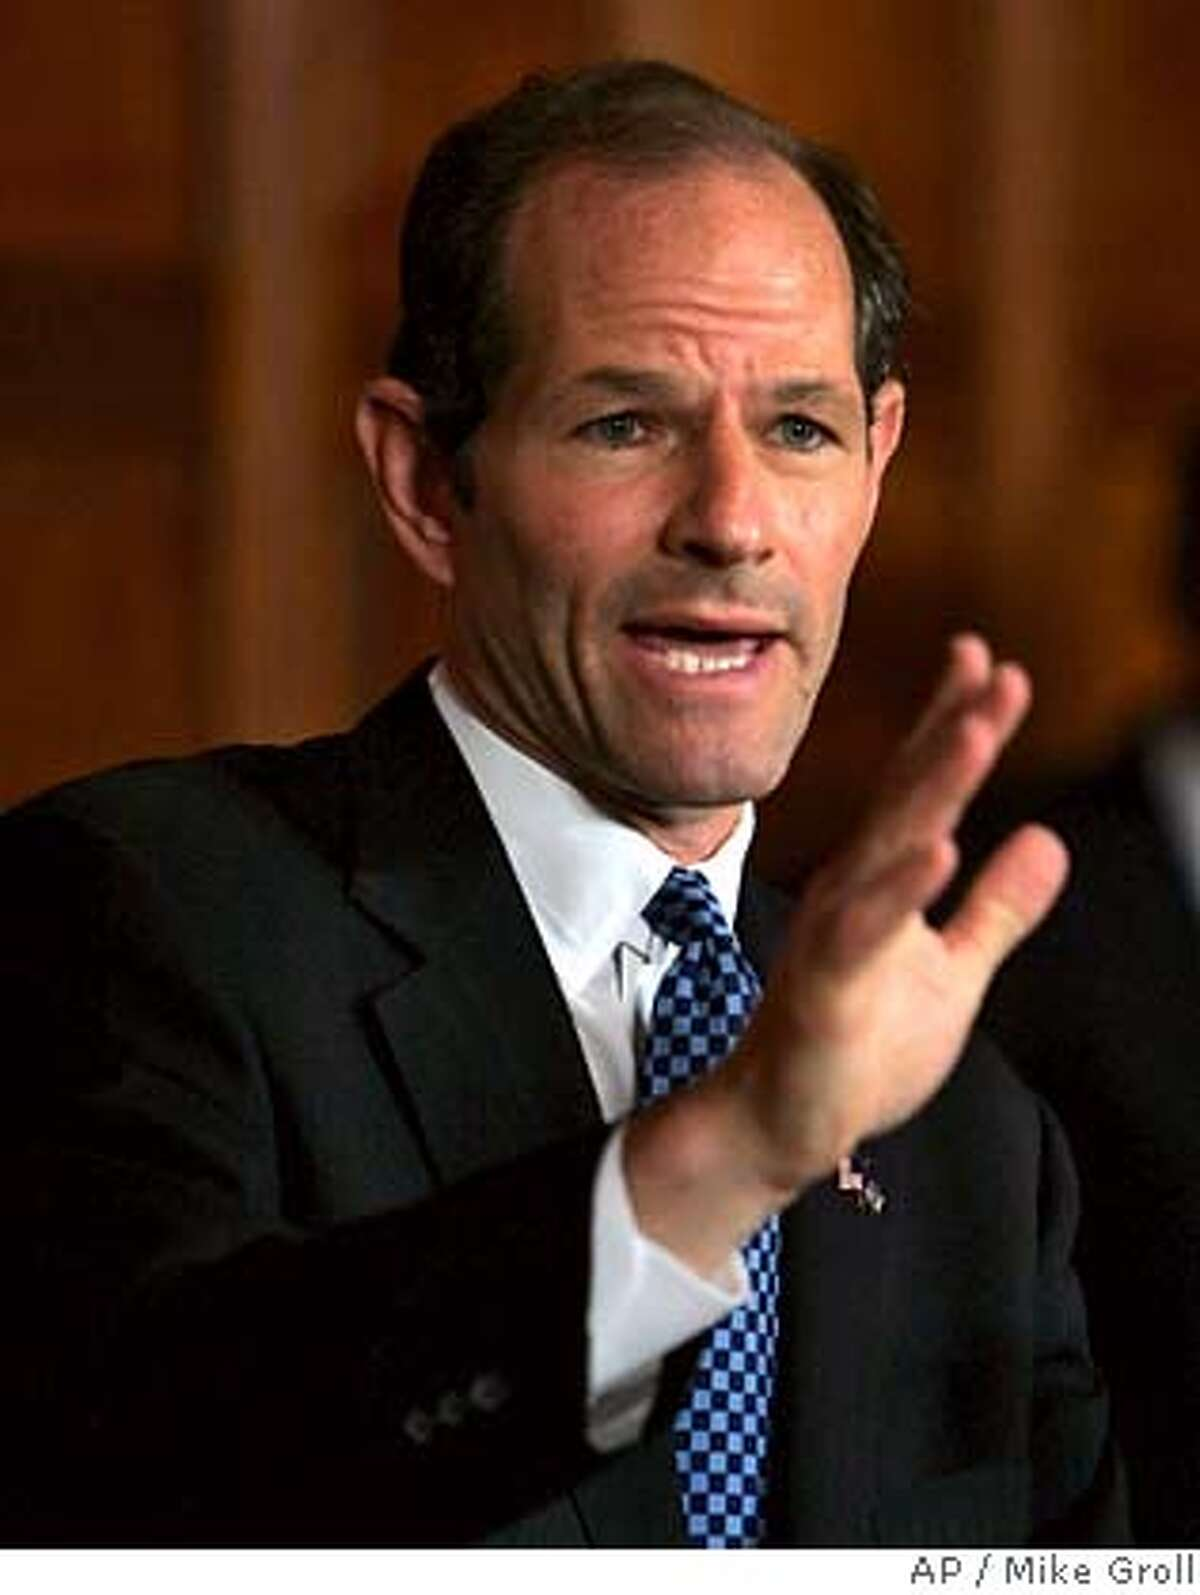 **FILE** New York Gov. Eliot Spitzer answers questions during a news conference at the Capitol in Albany, N.Y., in this Thursday, July 26, 2007 file photo. A prominent political consultant for the state Senate Republicans agreed to resign Wednesday after reports surfaced that he had made a threatening phone call to Gov. Eliot Spitzer's father. Roger Stone, who in the 1970s worked on President Nixon's re-election effort and has also done work for Presidents Bush and Reagan, denied making the call and said he was